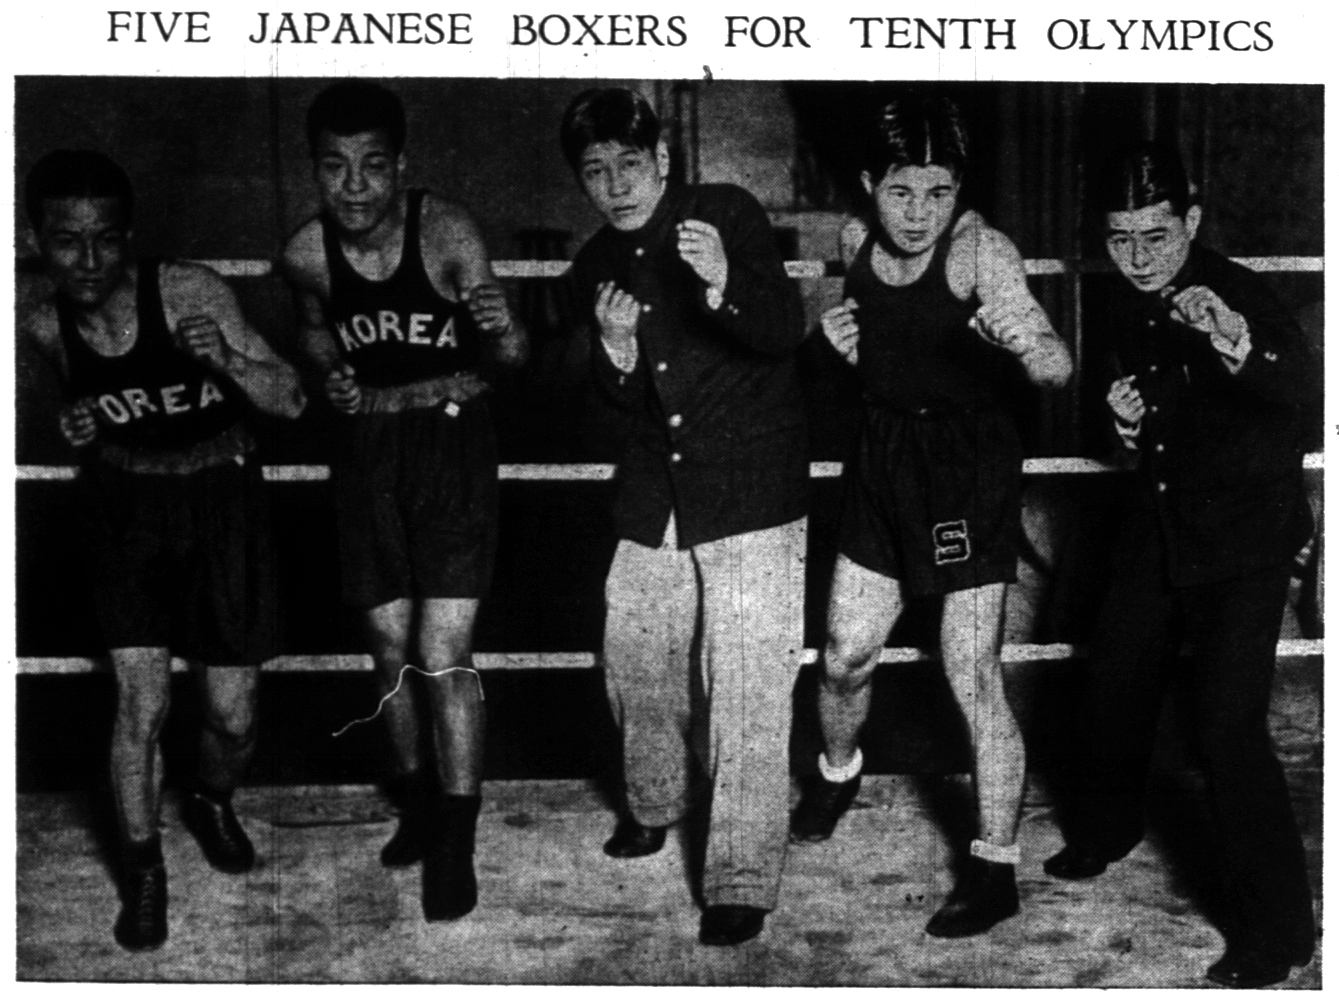 5 Japanese Boxers